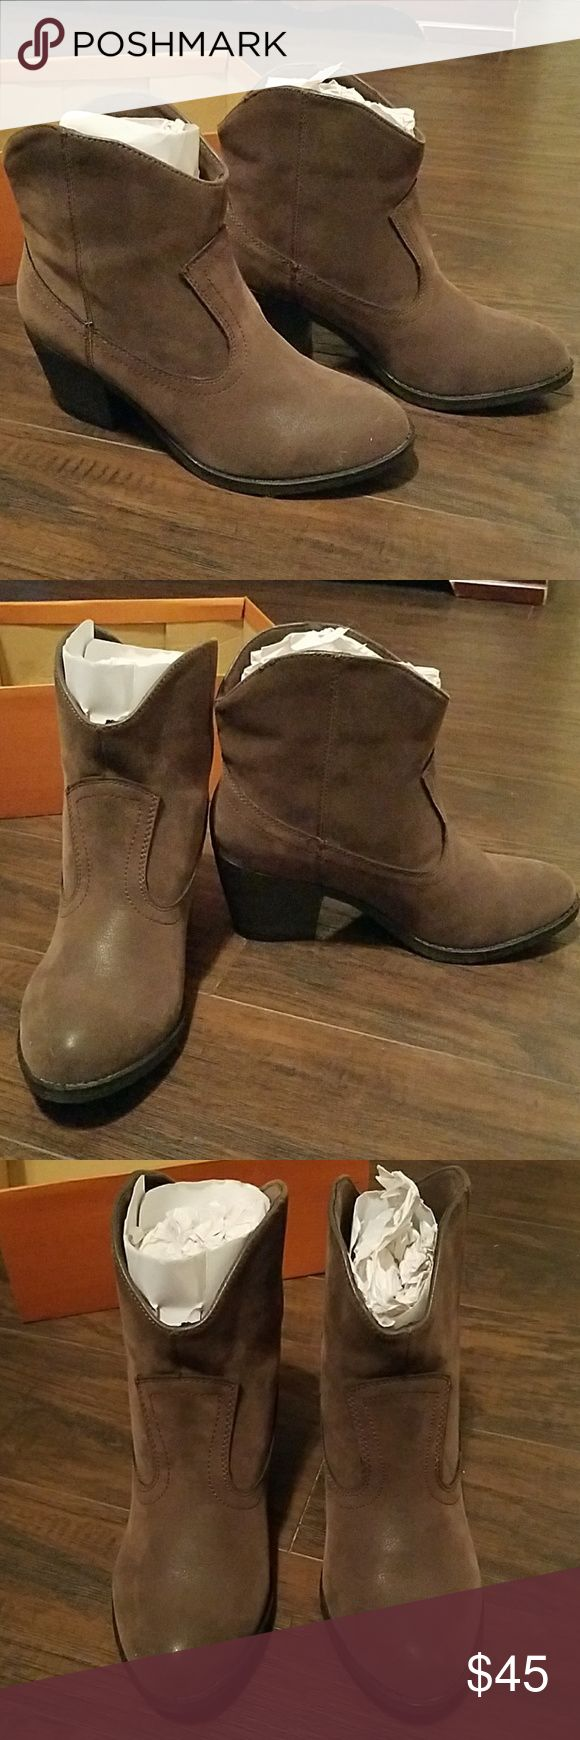 Rocket Dog ankle boots Ankle boots Rocket Dog Shoes Ankle Boots & Booties